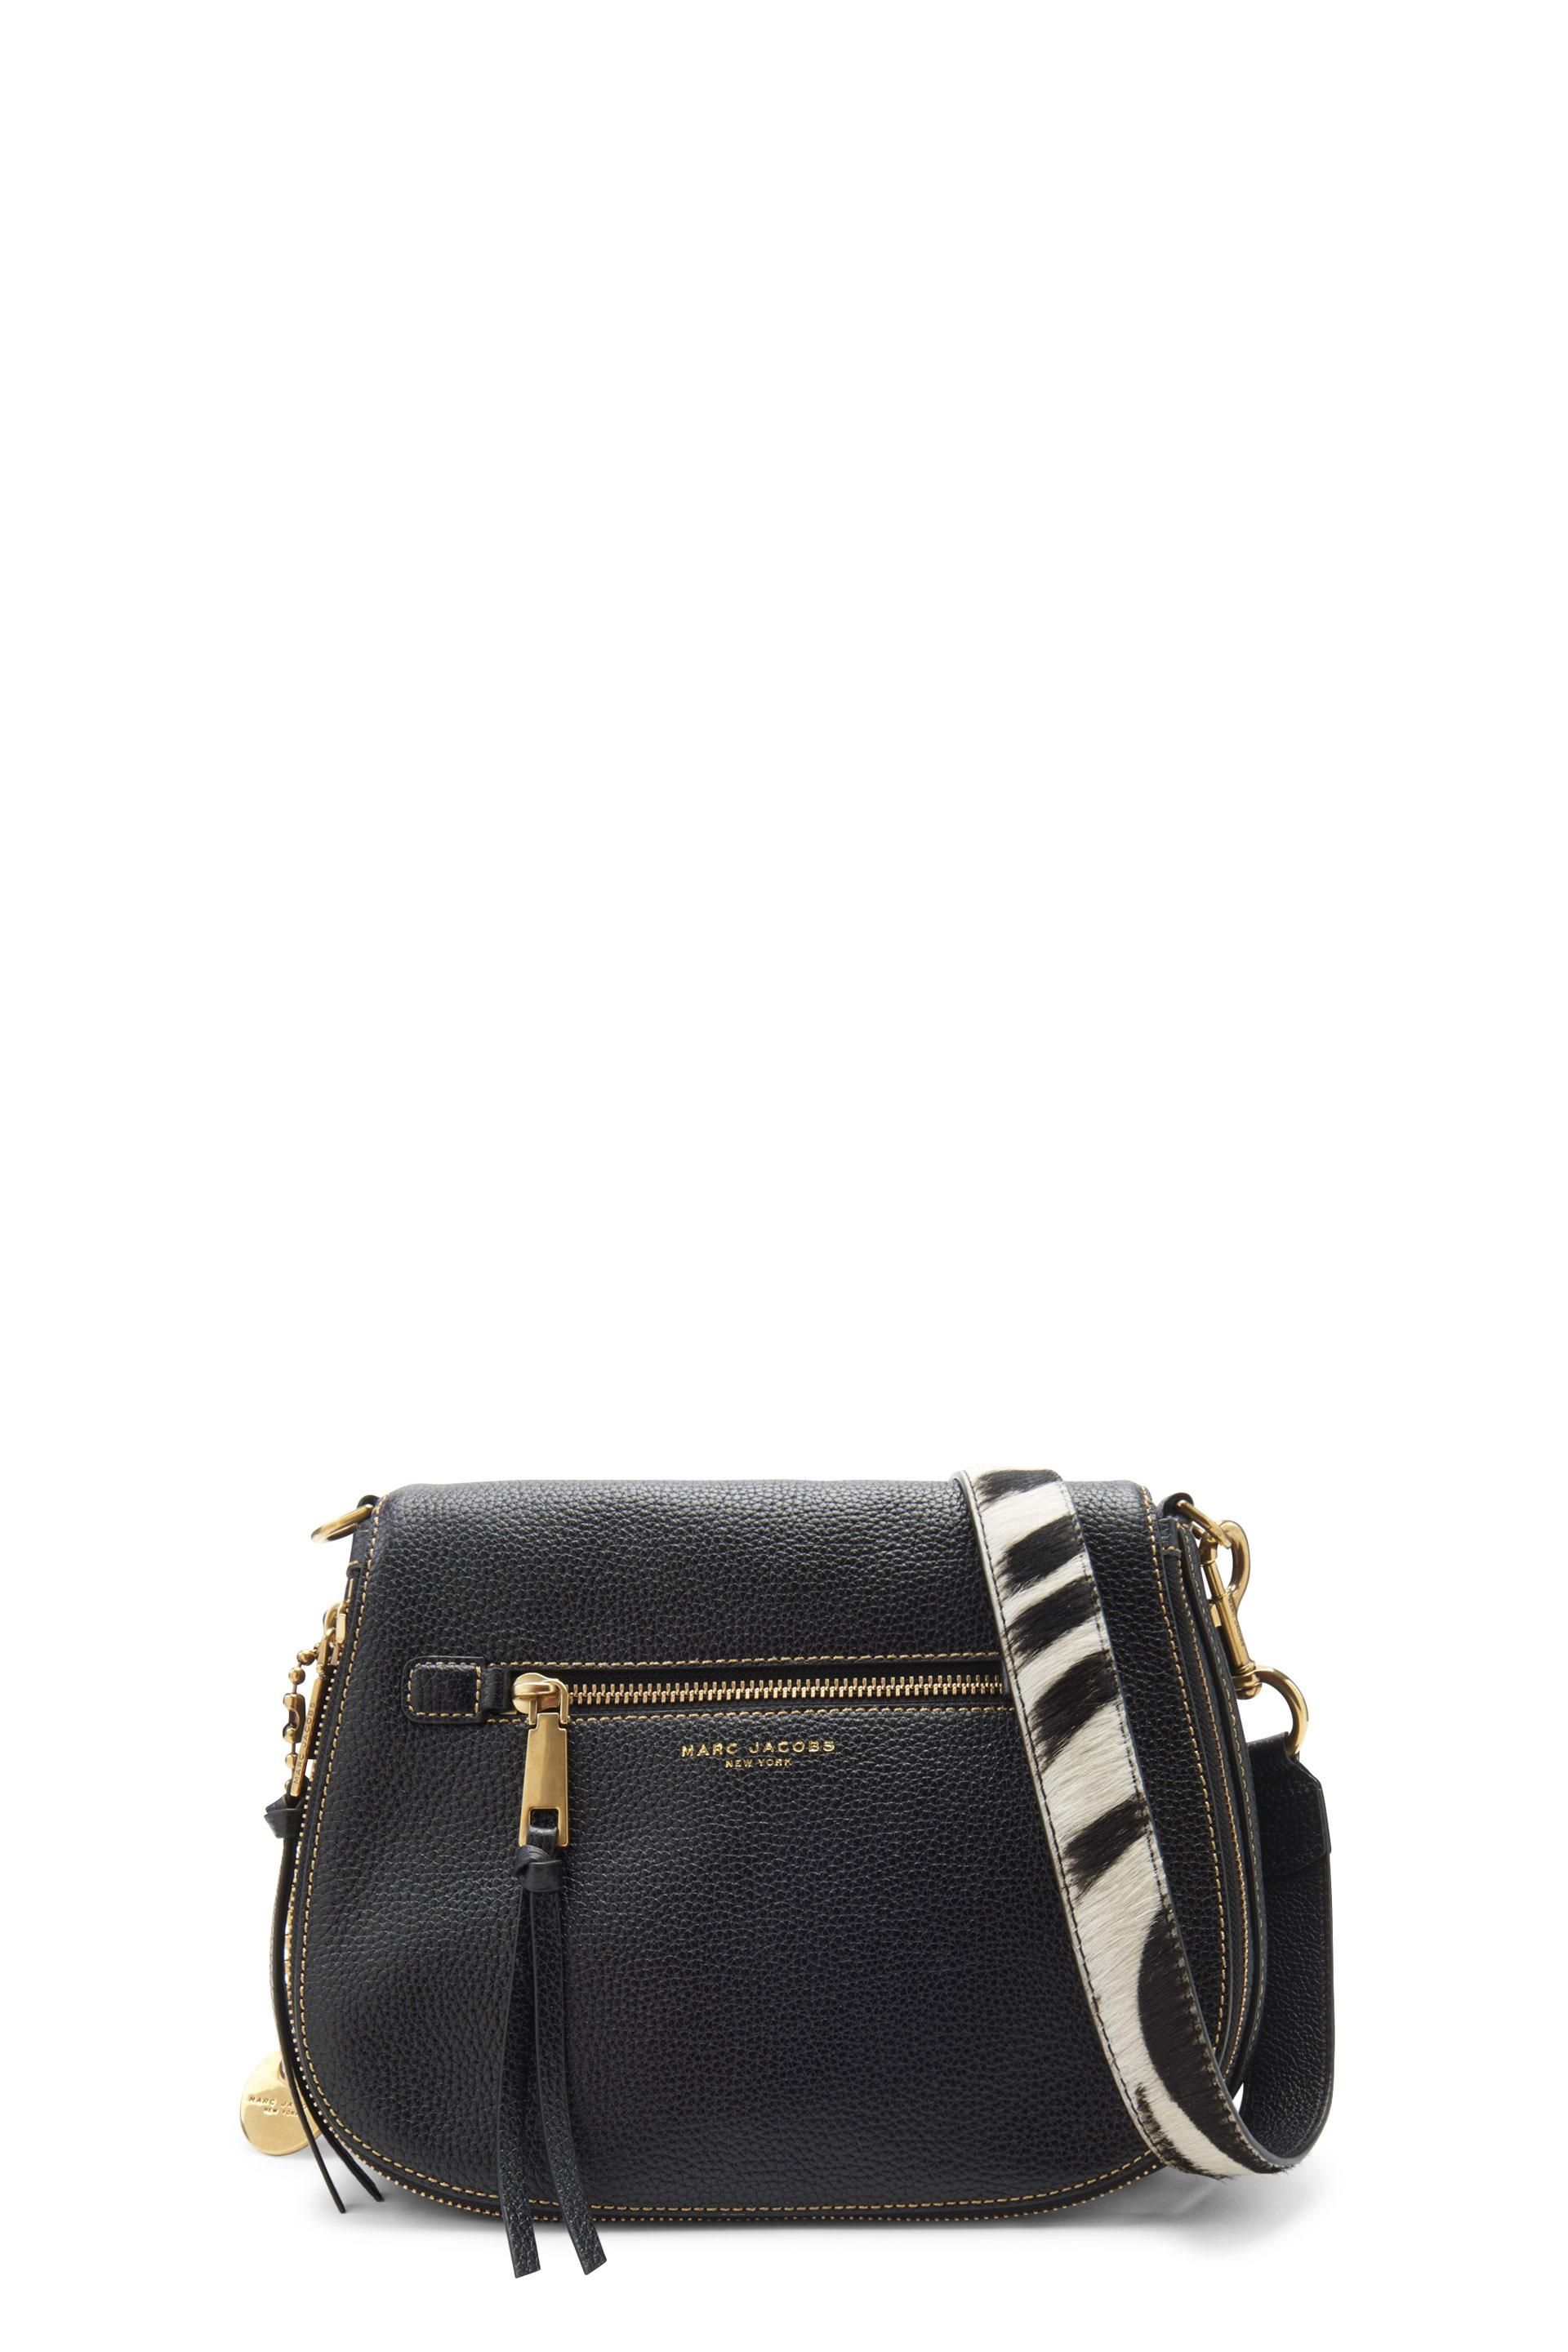 8effe0b7c8e The Marc Jacobs Recruit Saddle Bag with Guitar Strap is crafted from cow  leather and features polyester interior lining. The Saddle Bag has a dome  shape and ...